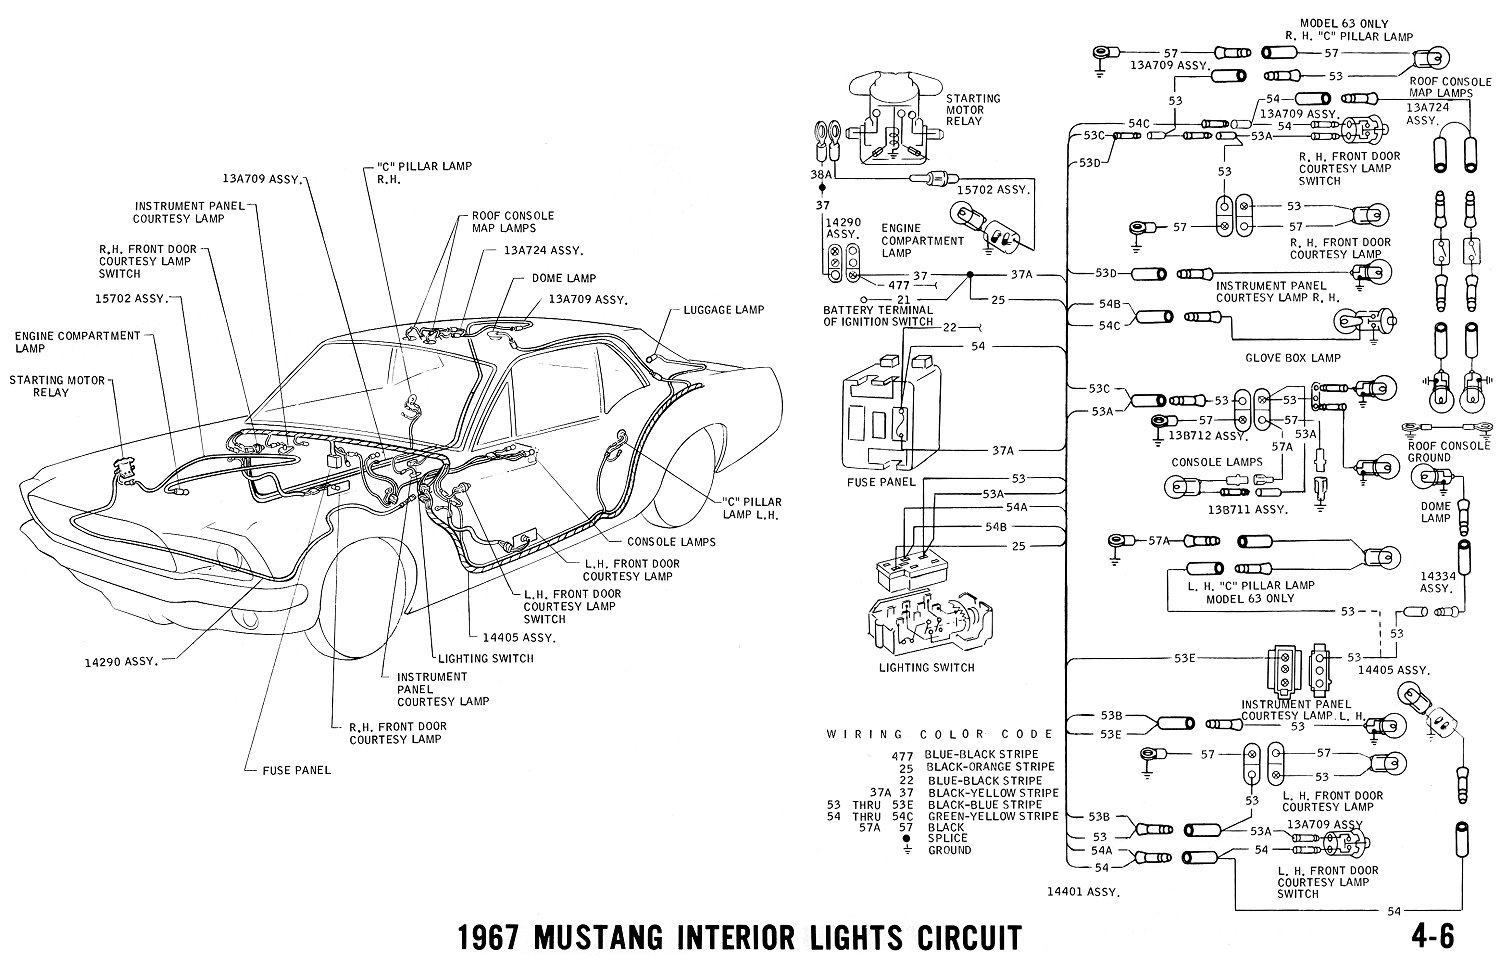 1967 Mustang Wiring And Vacuum Diagrams Average Joe Restoration Ford Light Diagram Pictorial Schematic